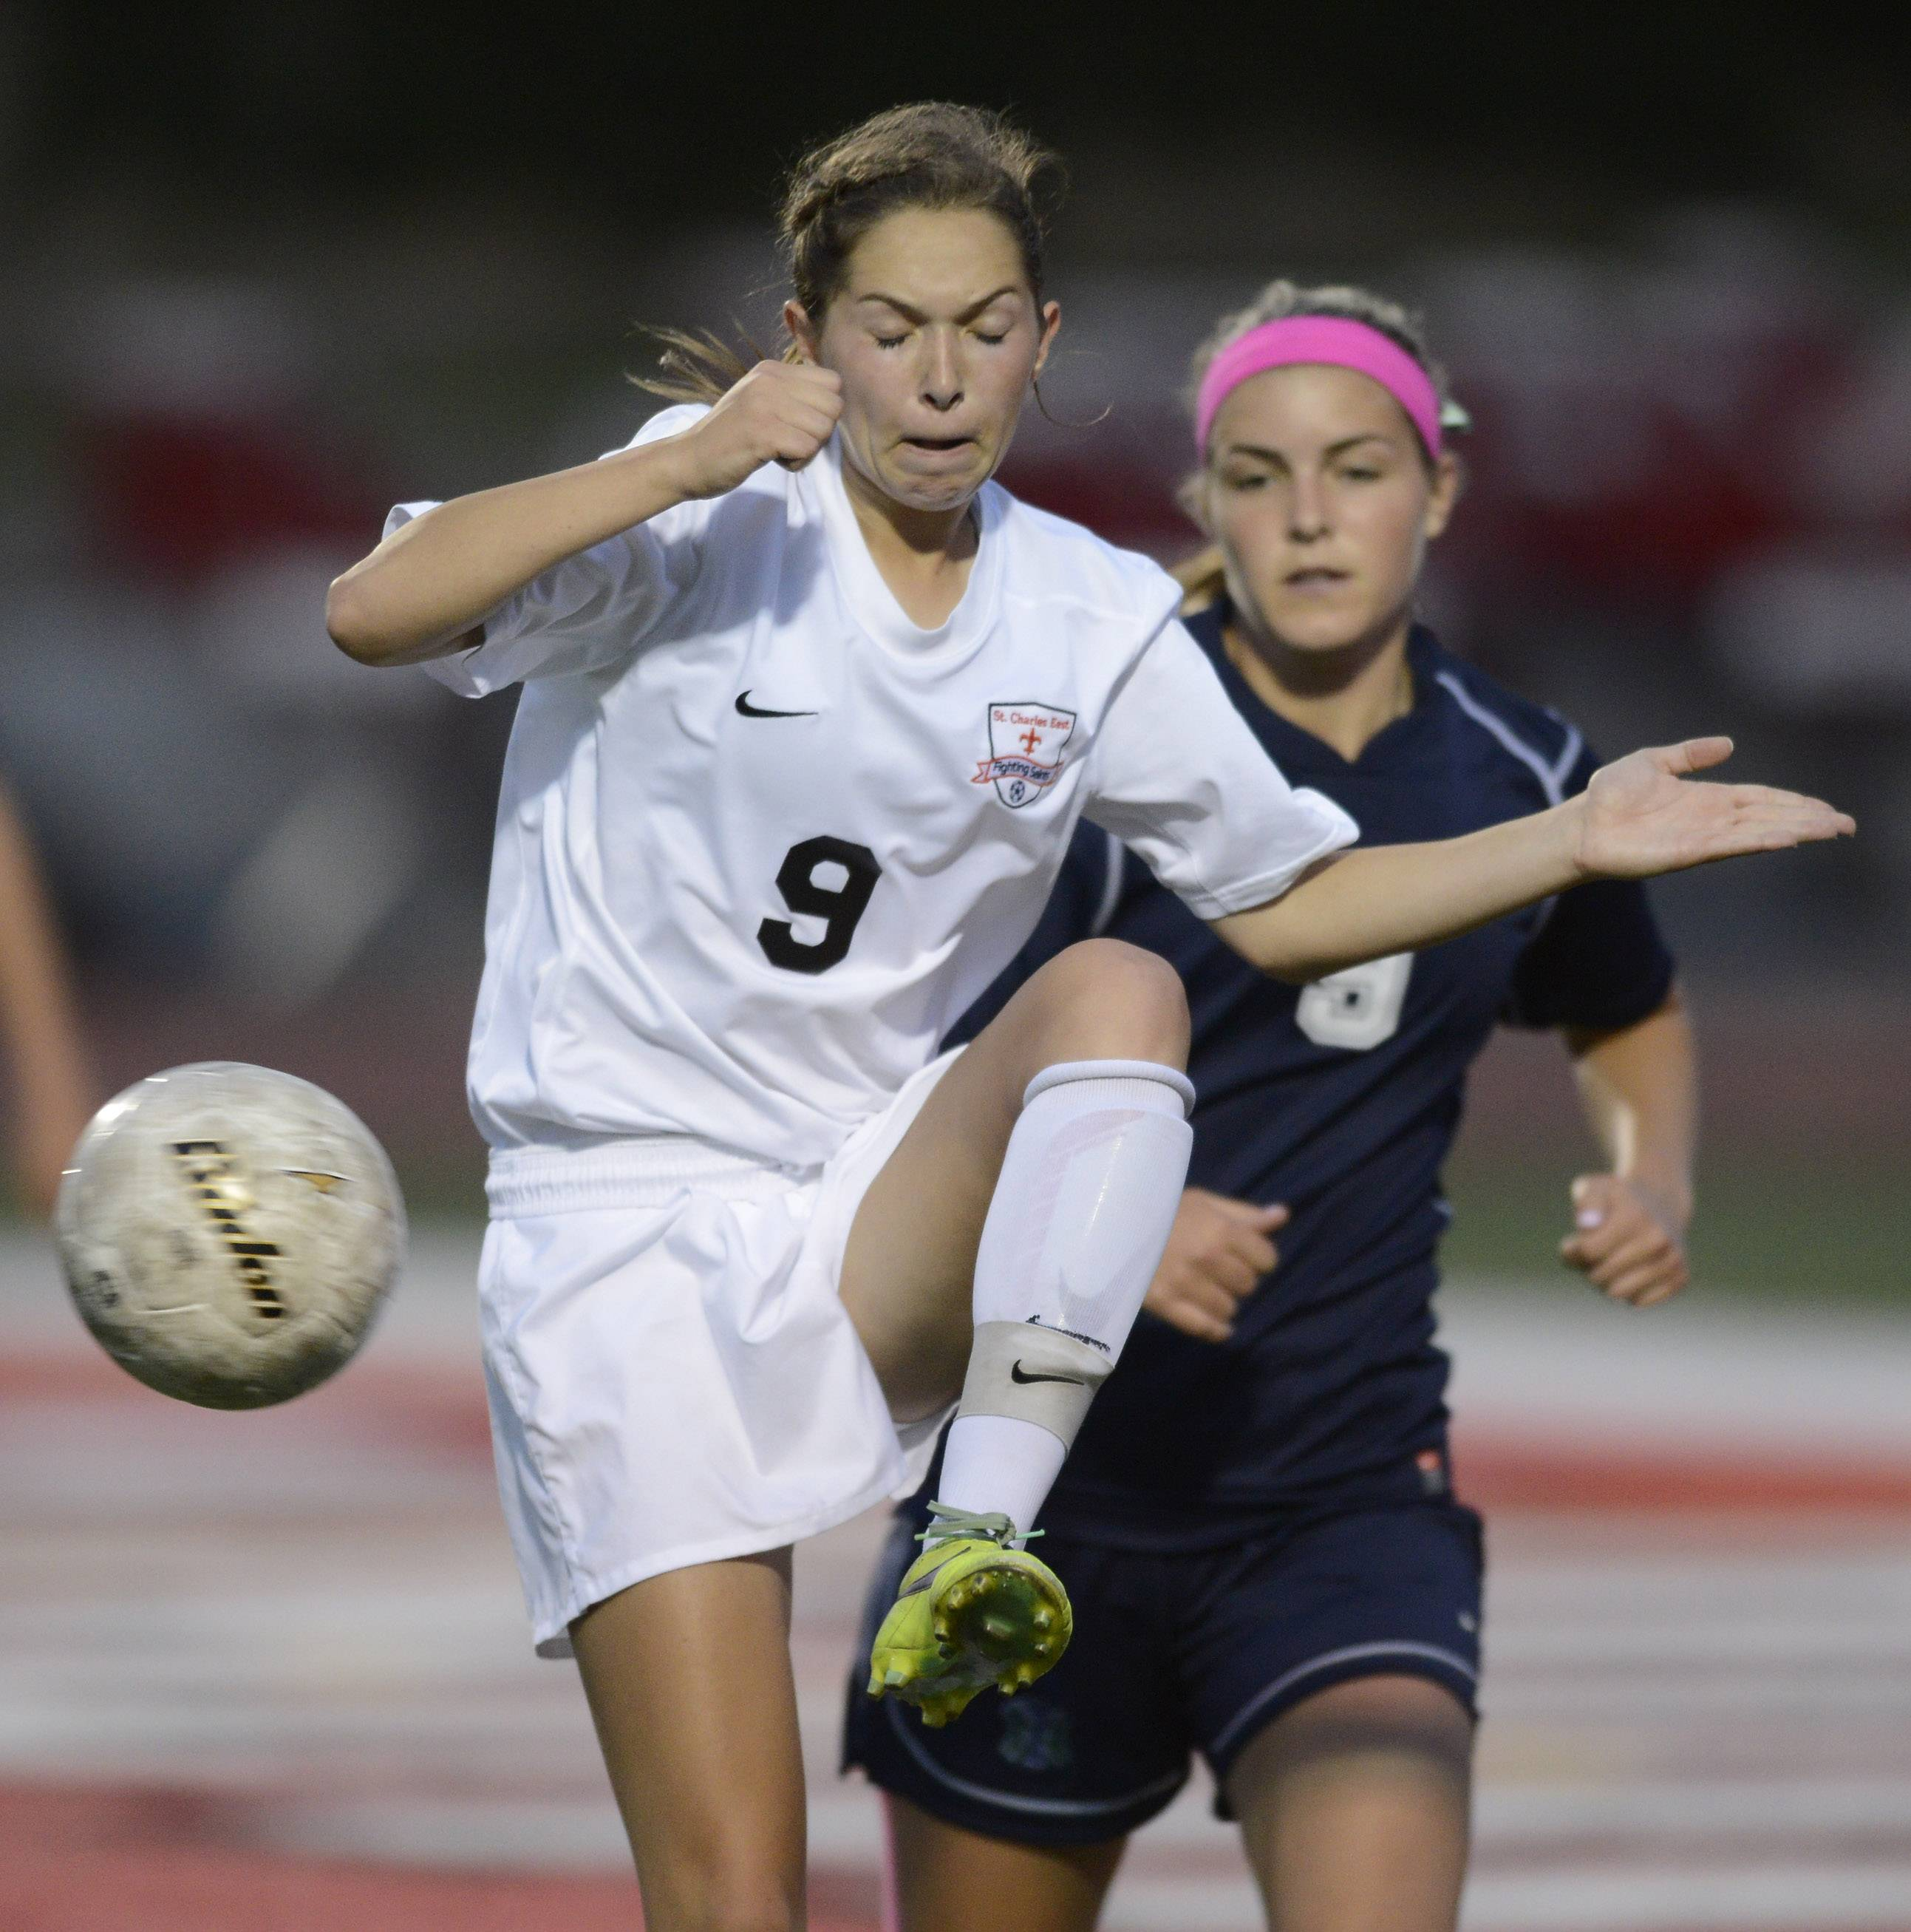 Darcy Cunningham of St. Charles East stretches for the ball in front of Molly Cahill of New Trier during the girls soccer Class 3A state final at North Central College in Naperville Saturday.